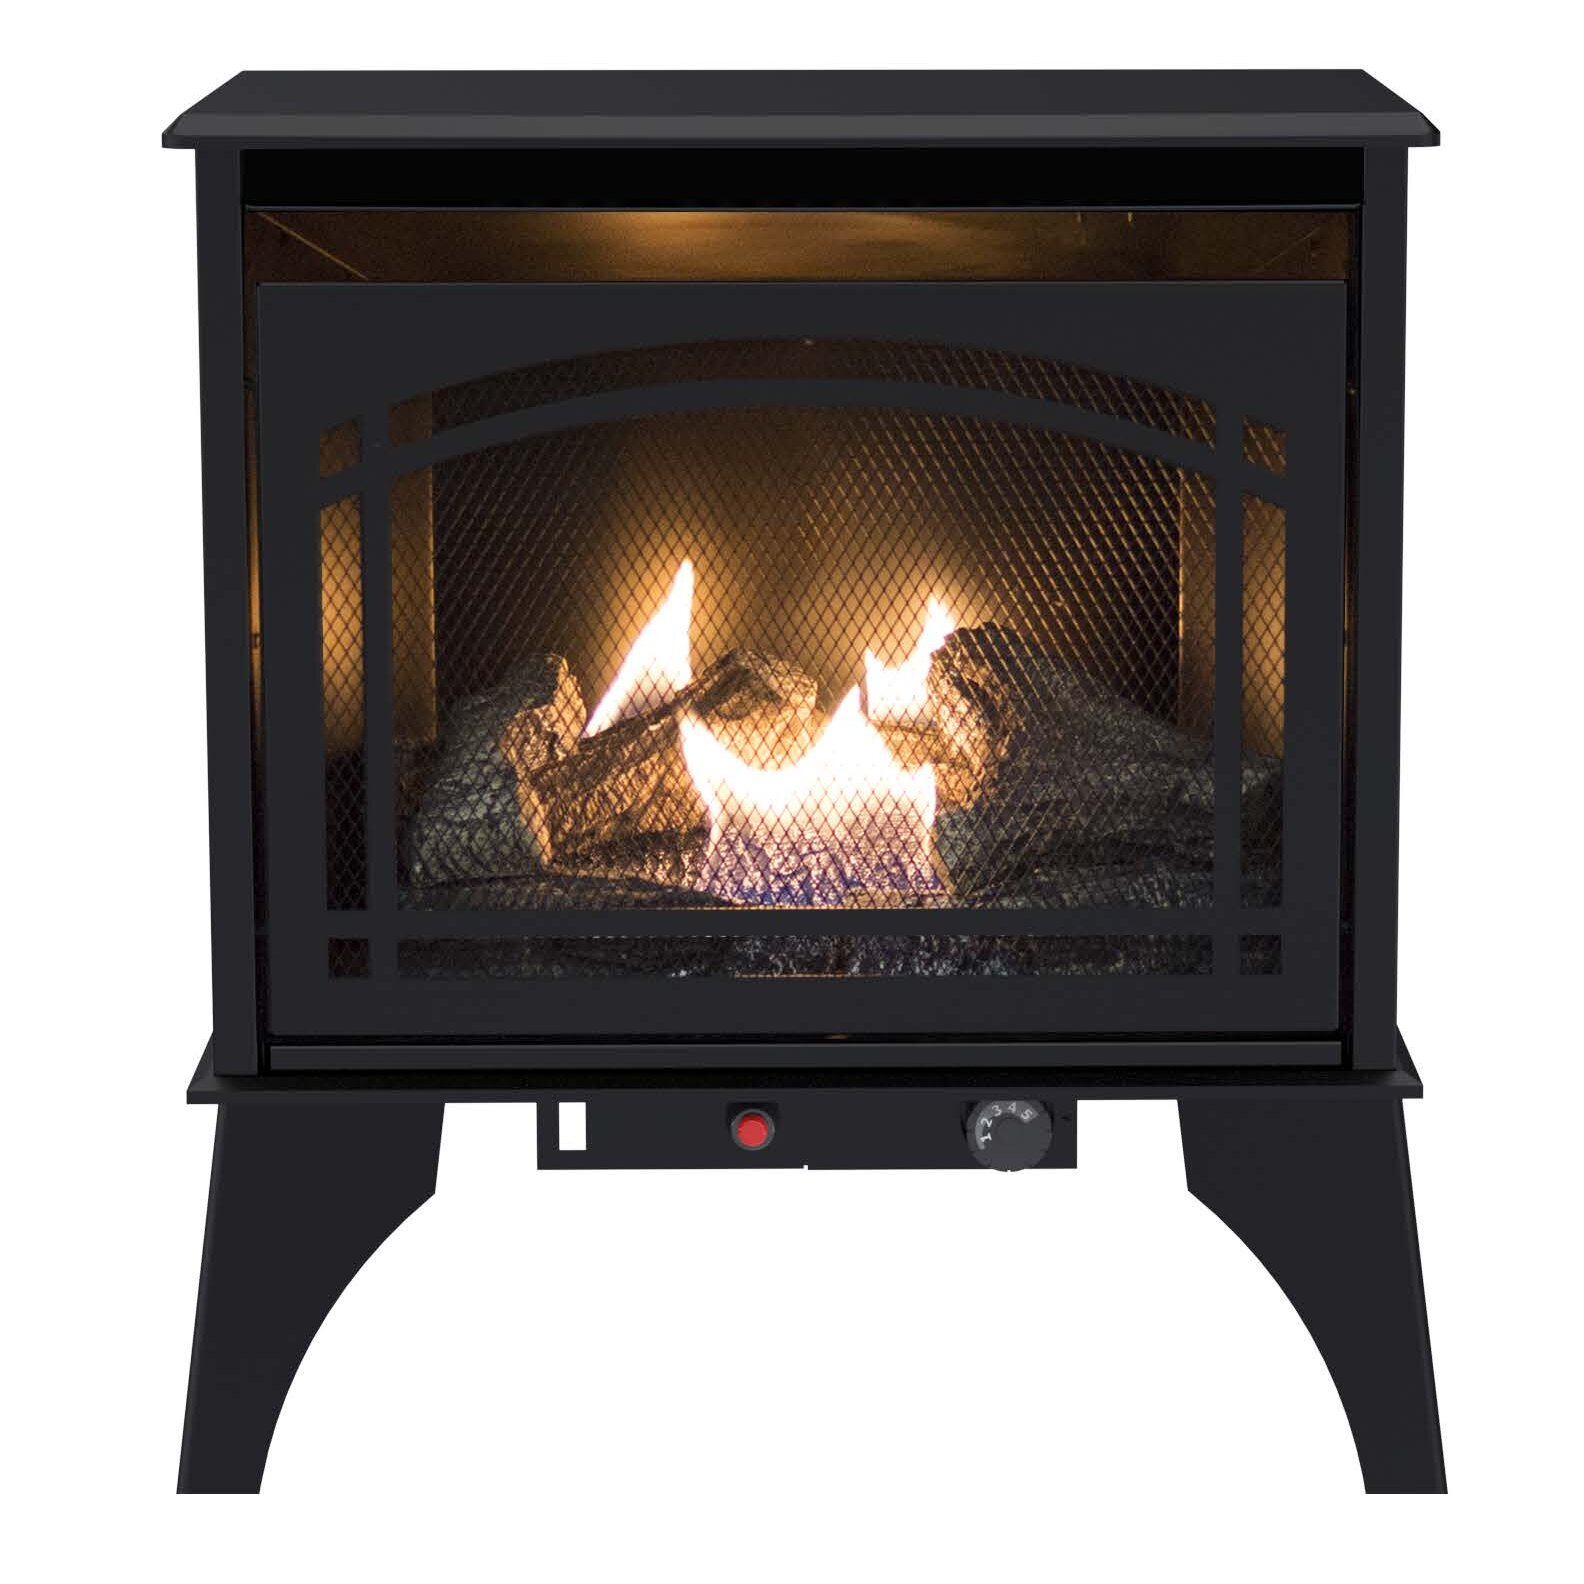 Pleasant Hearth Compact Vent-Free 700 Square Foot Gas Stove - Pleasant Hearth Compact Vent-Free 700 Square Foot Gas Stove